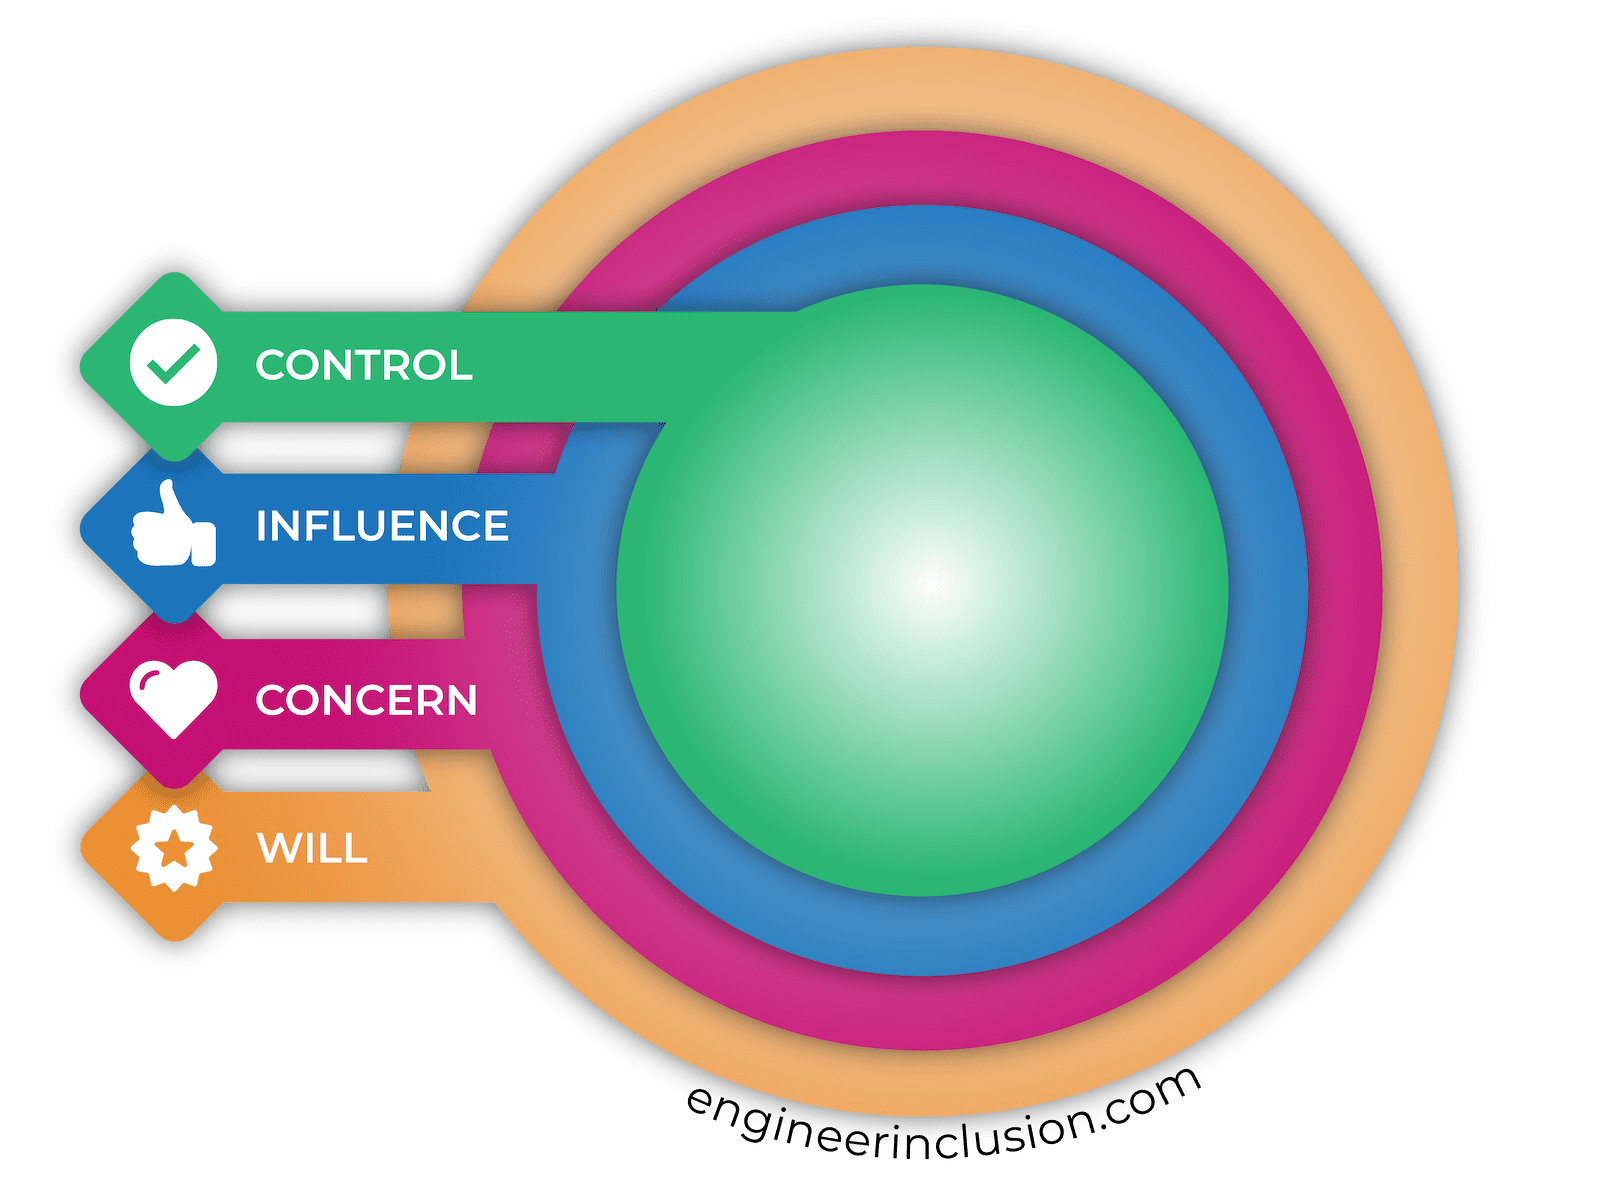 Circle of Control, Influence, Concern, and Will